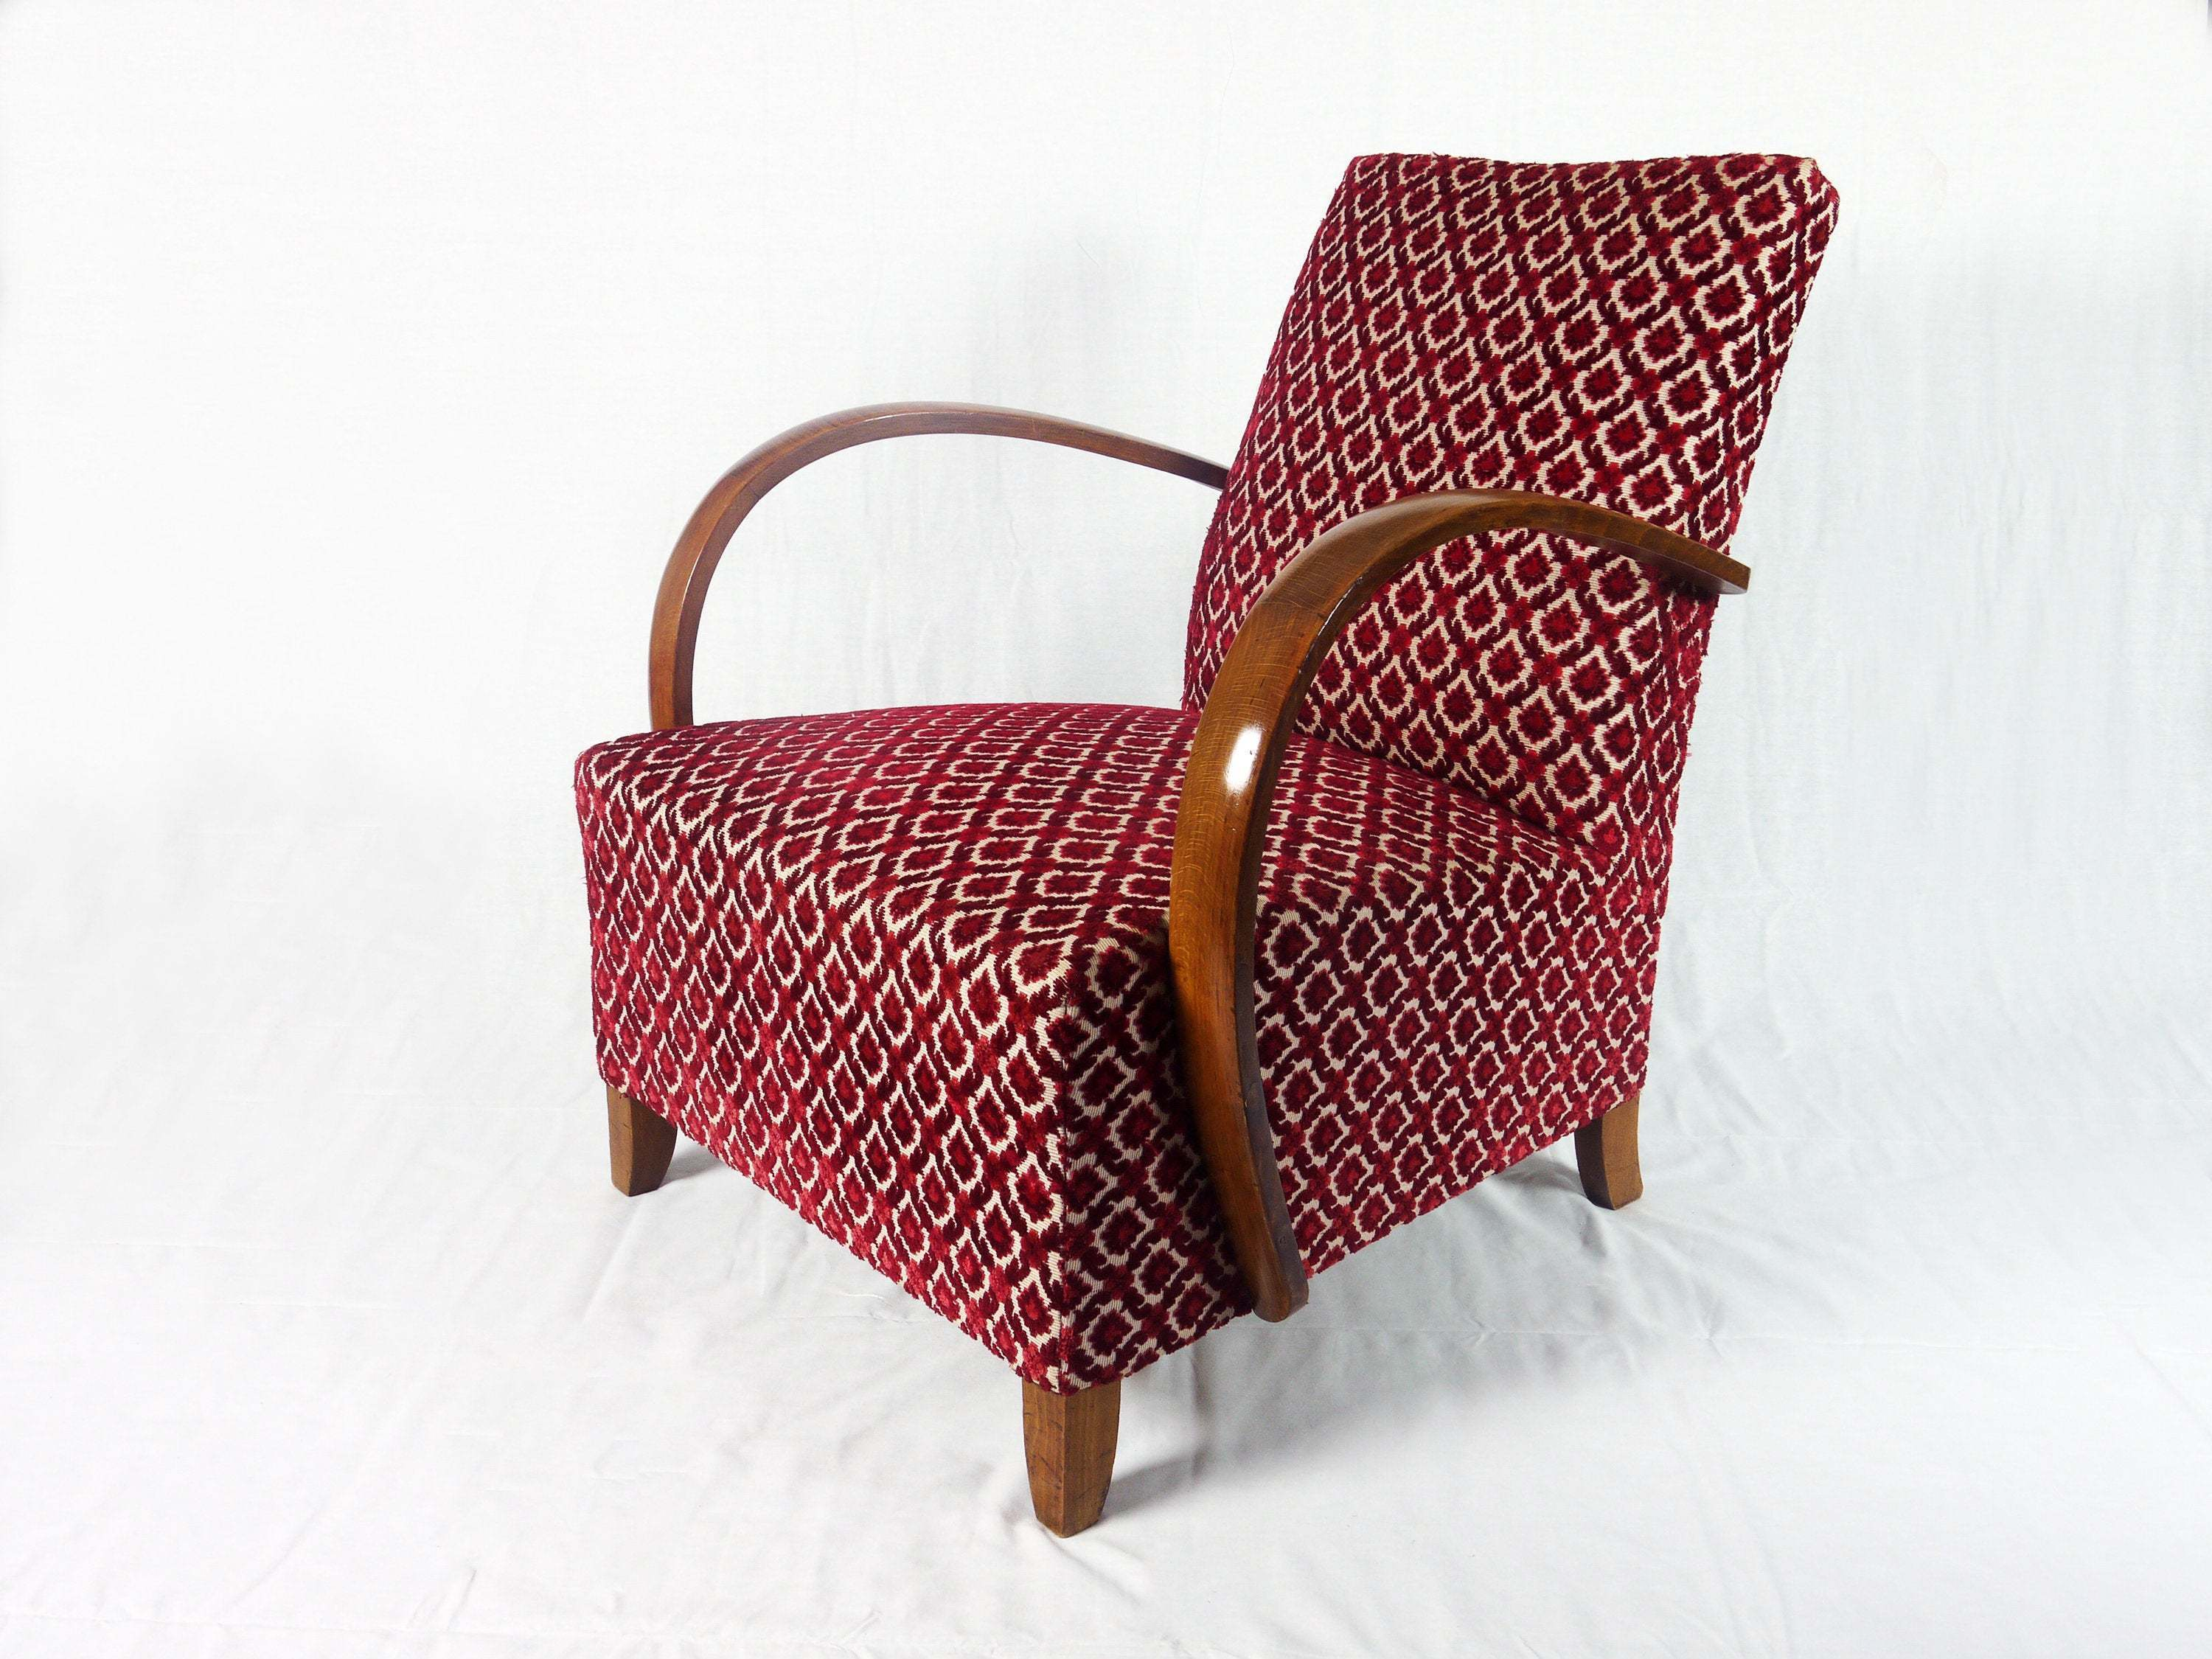 french art deco armchair with wooden arms and original flock fabric 0